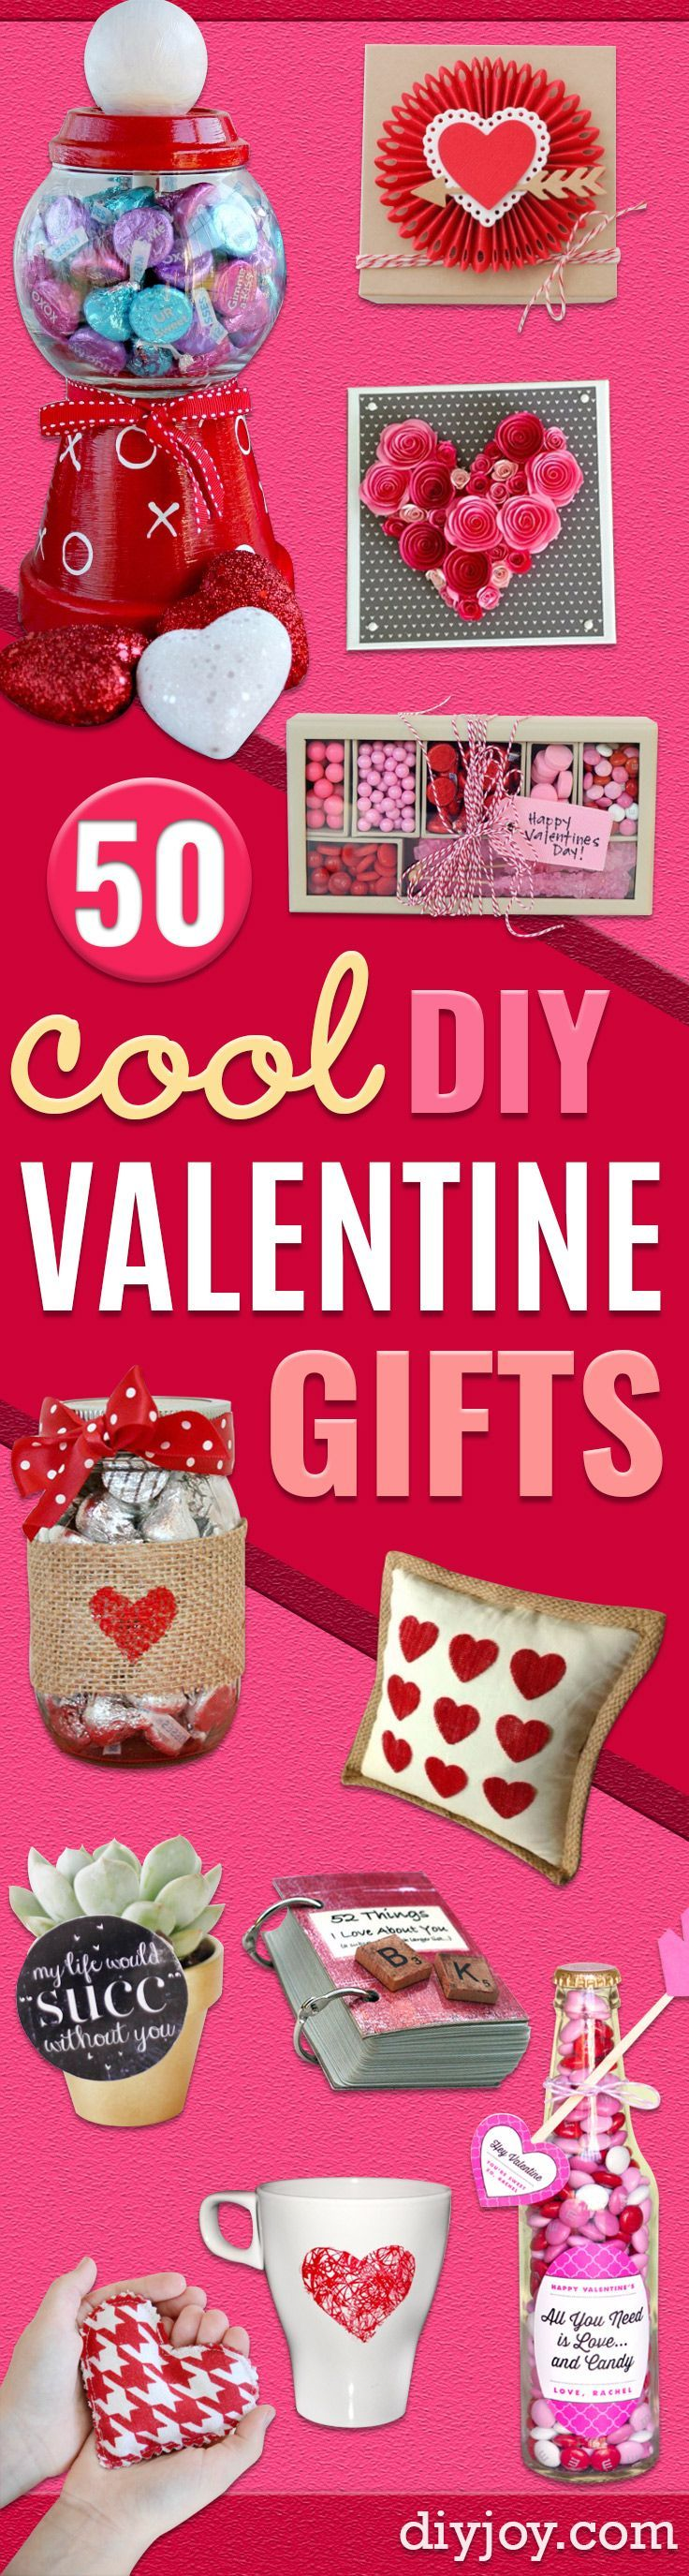 50 Cool and Easy DIY Valentine's Day Gifts Boyfriend